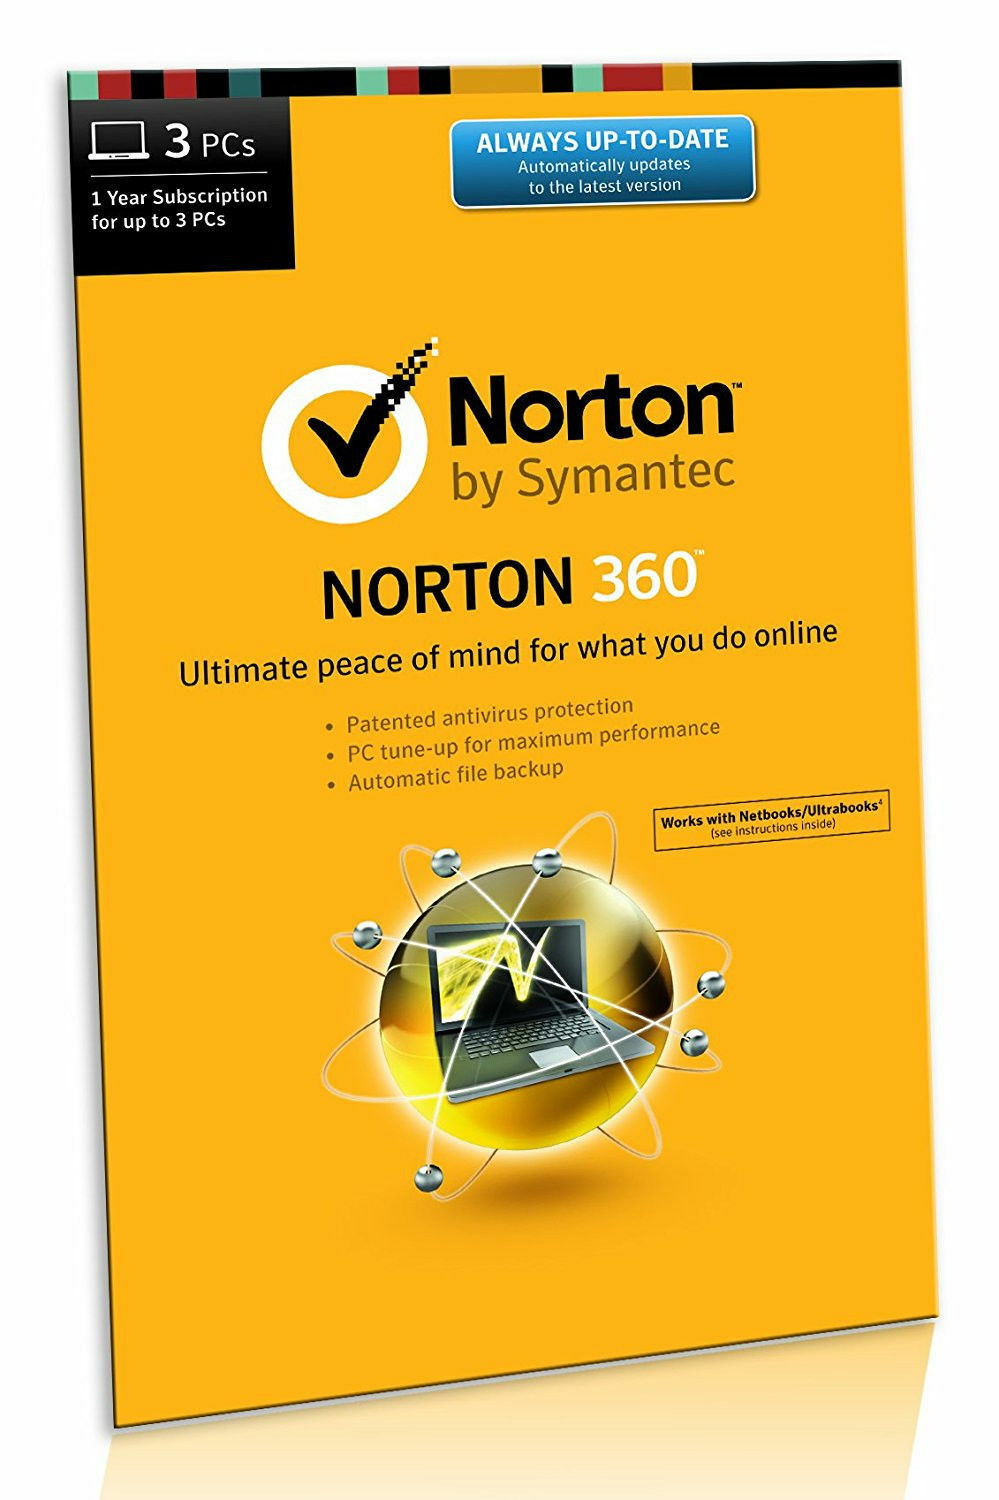 Norton software offers the latest technology to protect your PC, Mac, smartphone, and tablet. Find out more about Norton's lineup of products and services.